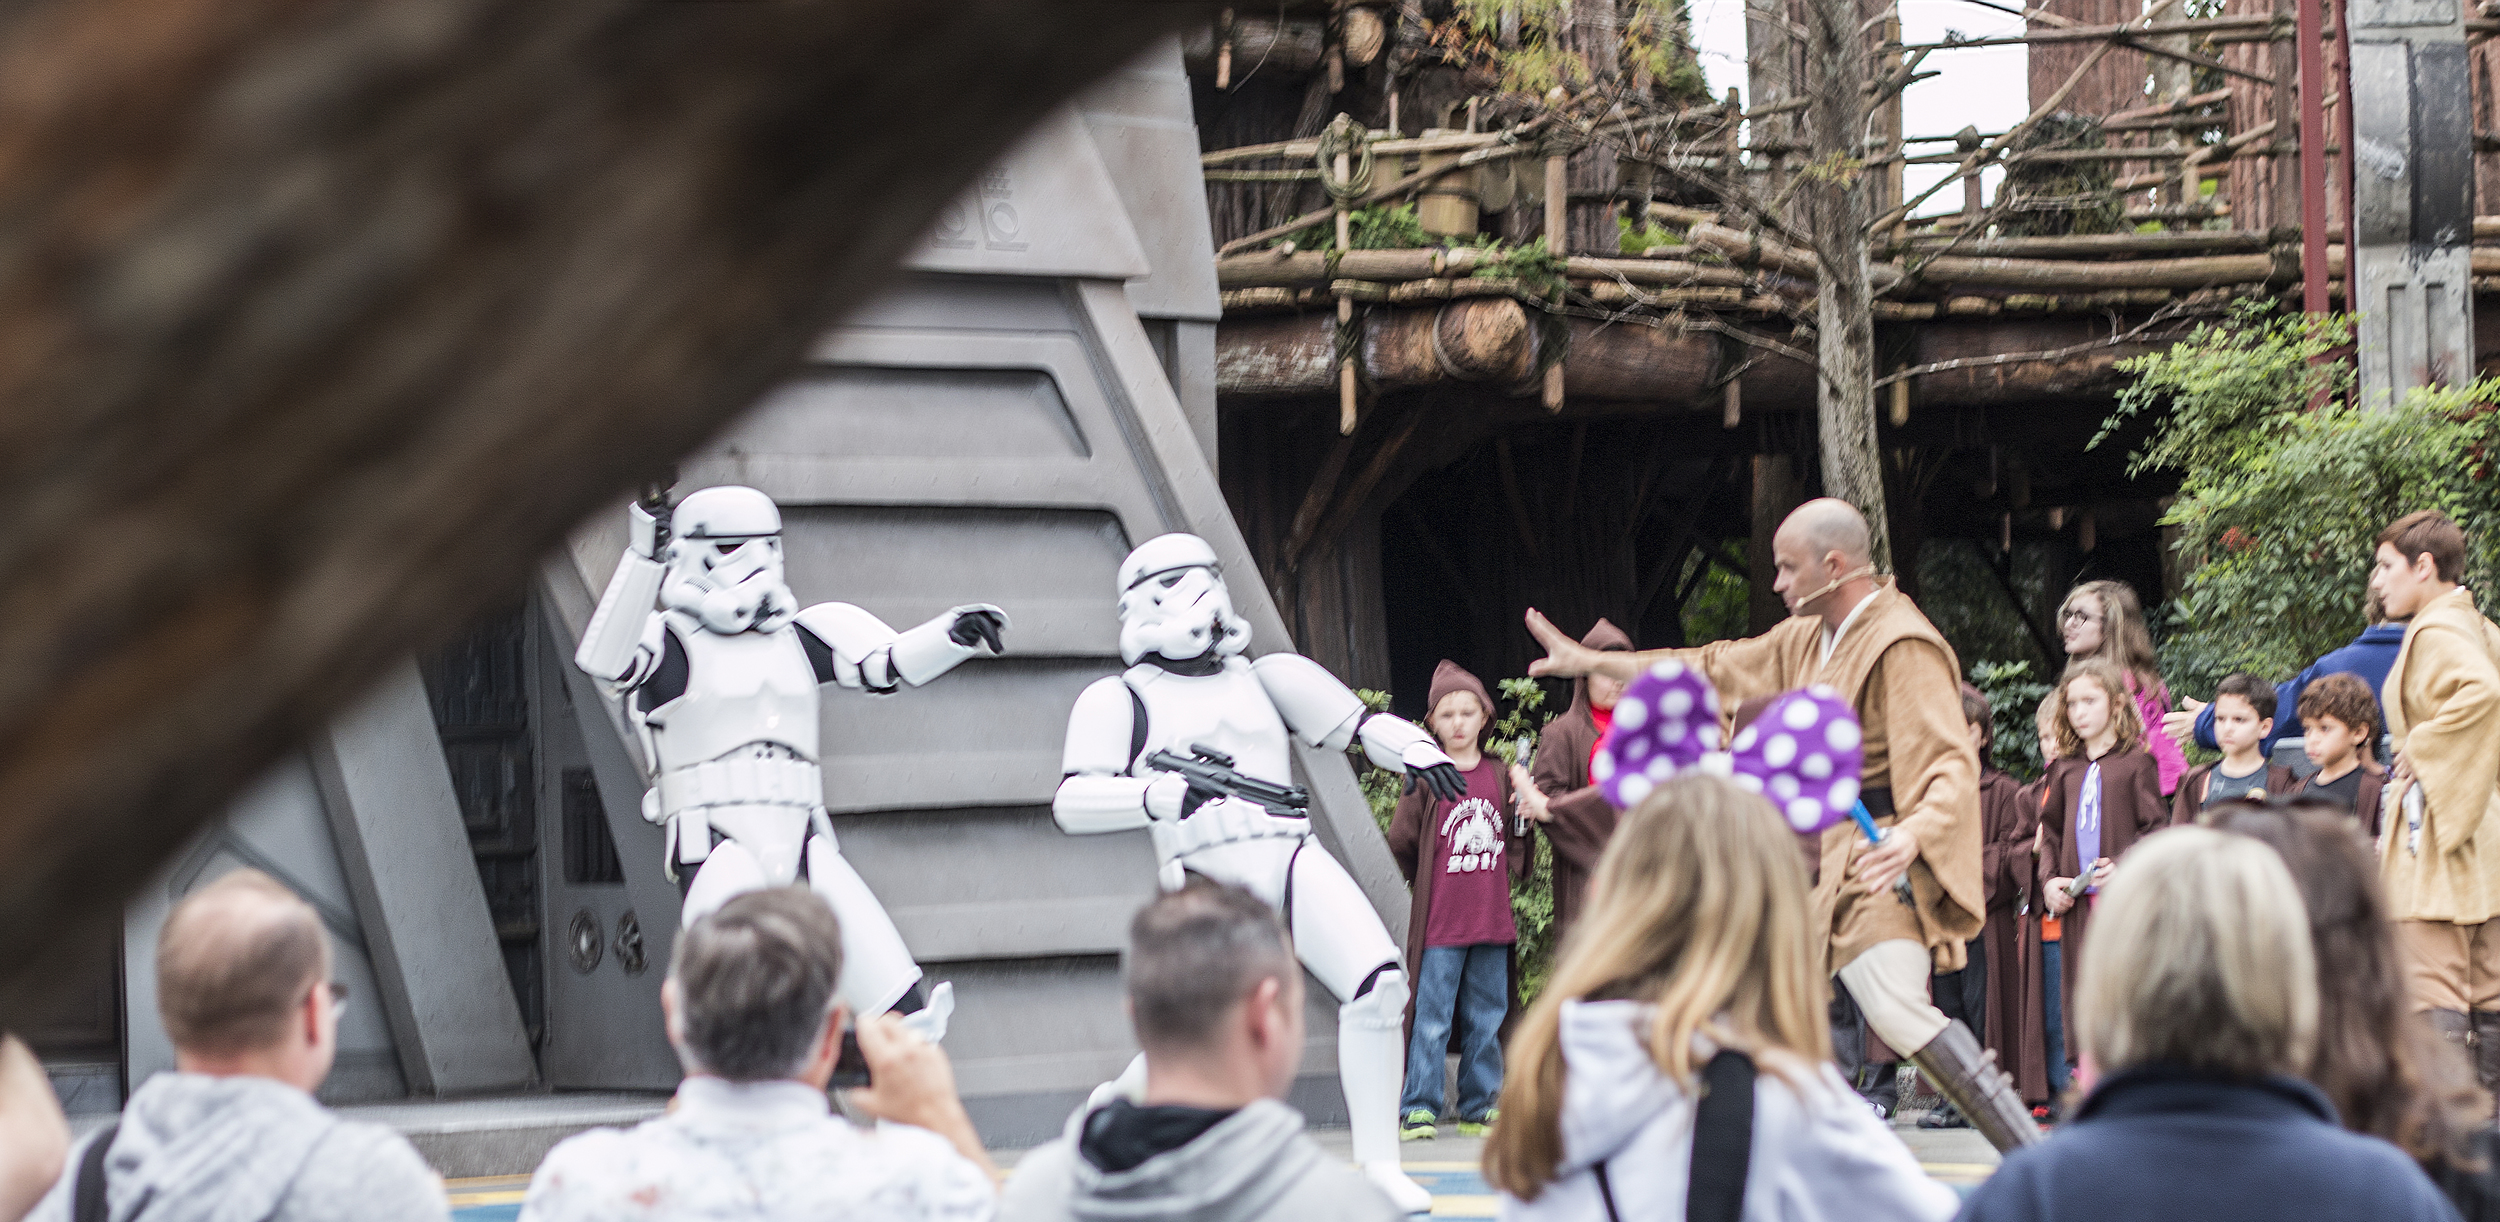 The stormtrooper actors were very good too; everybody looked like they were having a tremendous amount of fun.